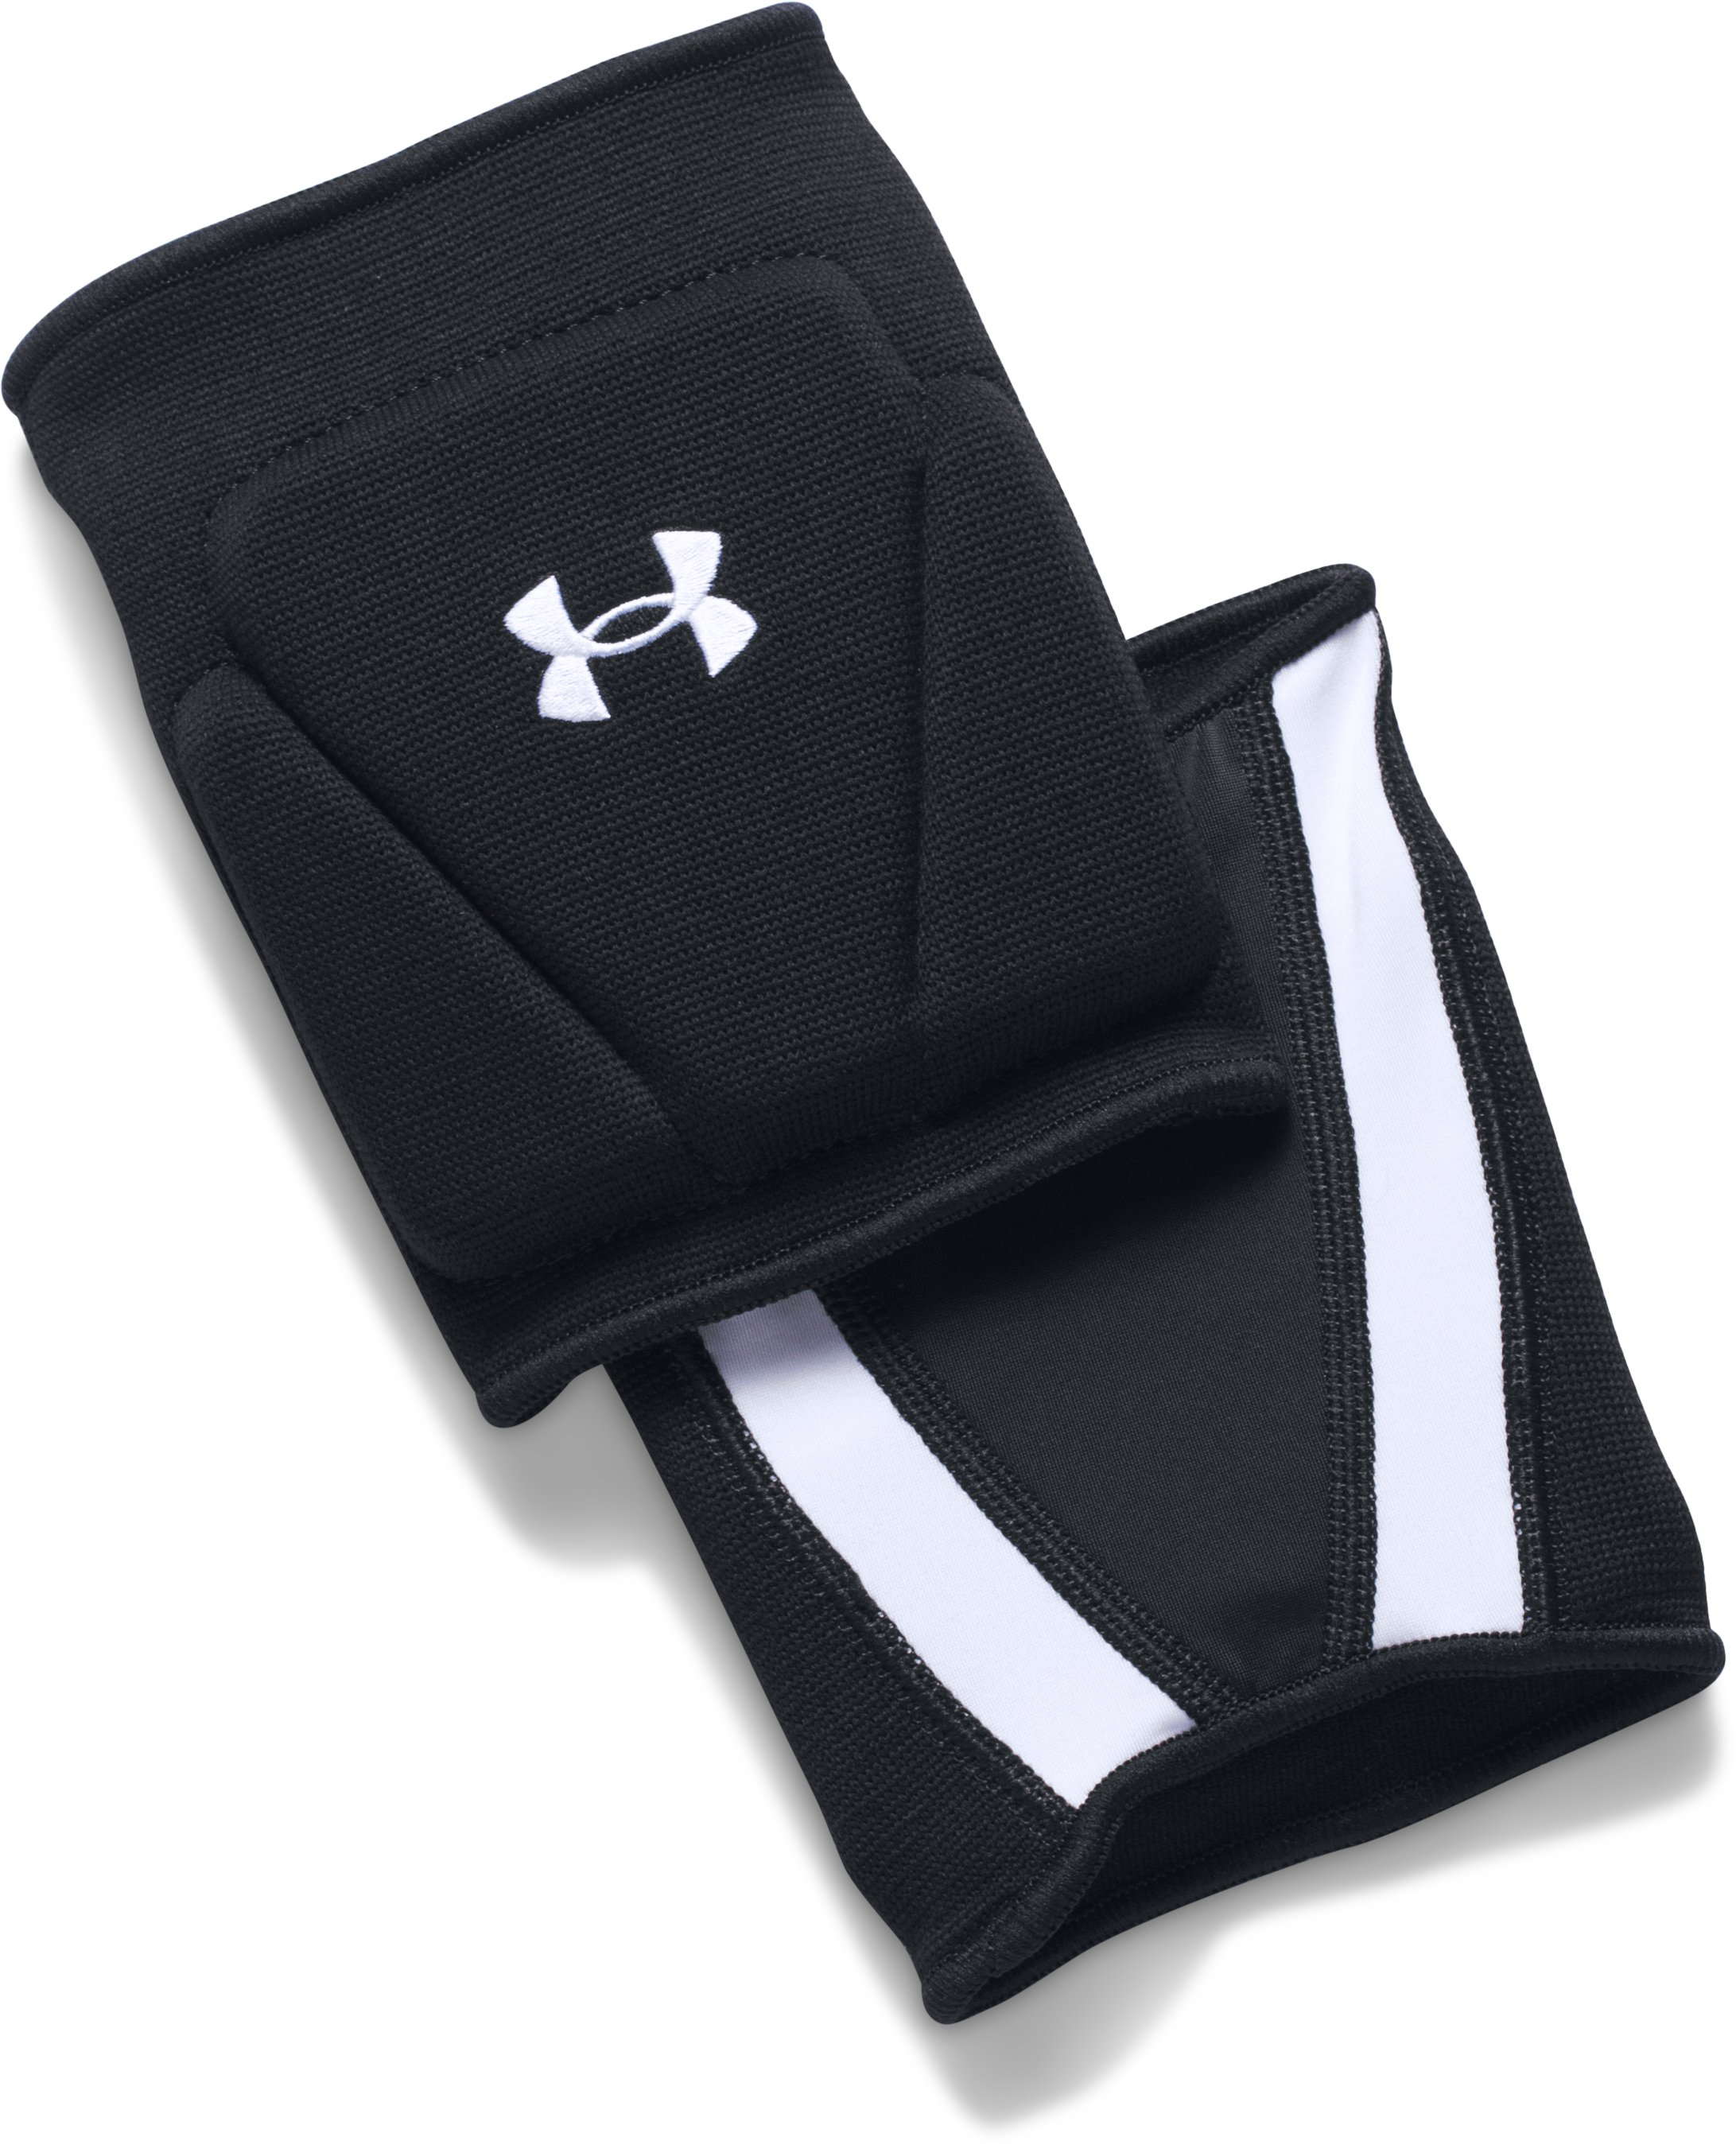 UA Strive 2.0 Knee Pads, Black